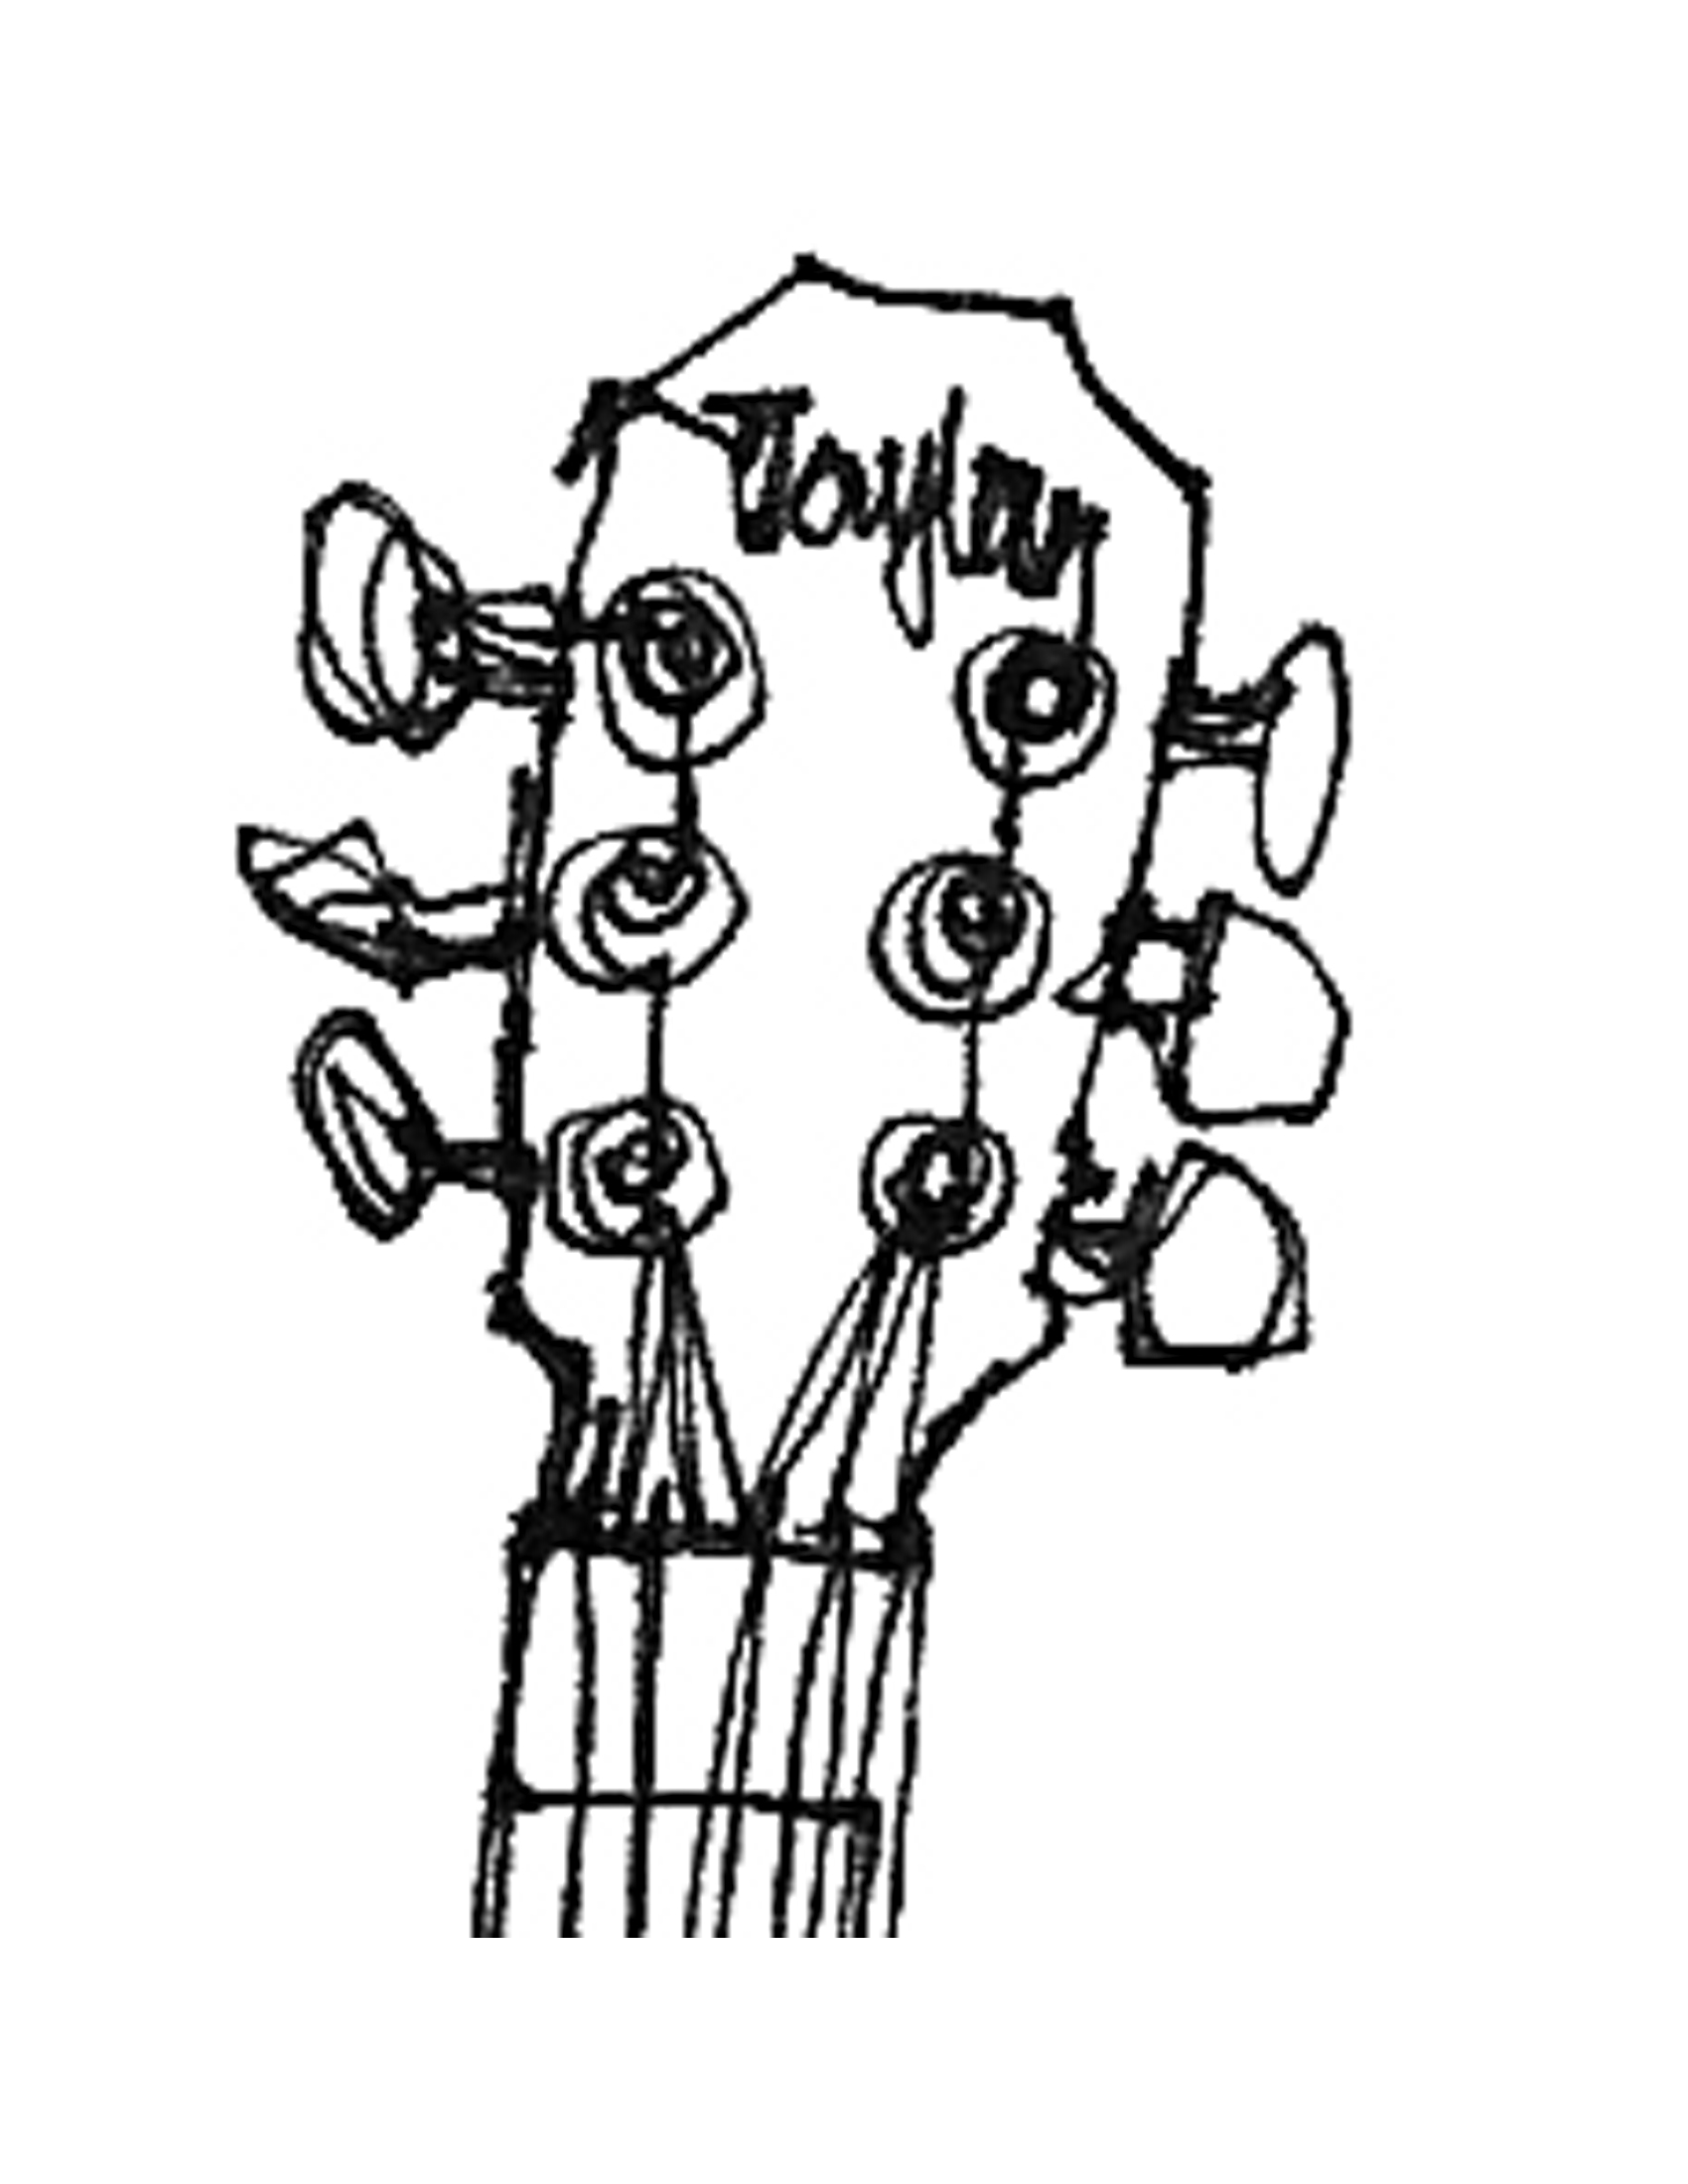 Guitar headstock drawing clipart black and white freeuse download Guitar Line Drawing - ClipArt Best freeuse download